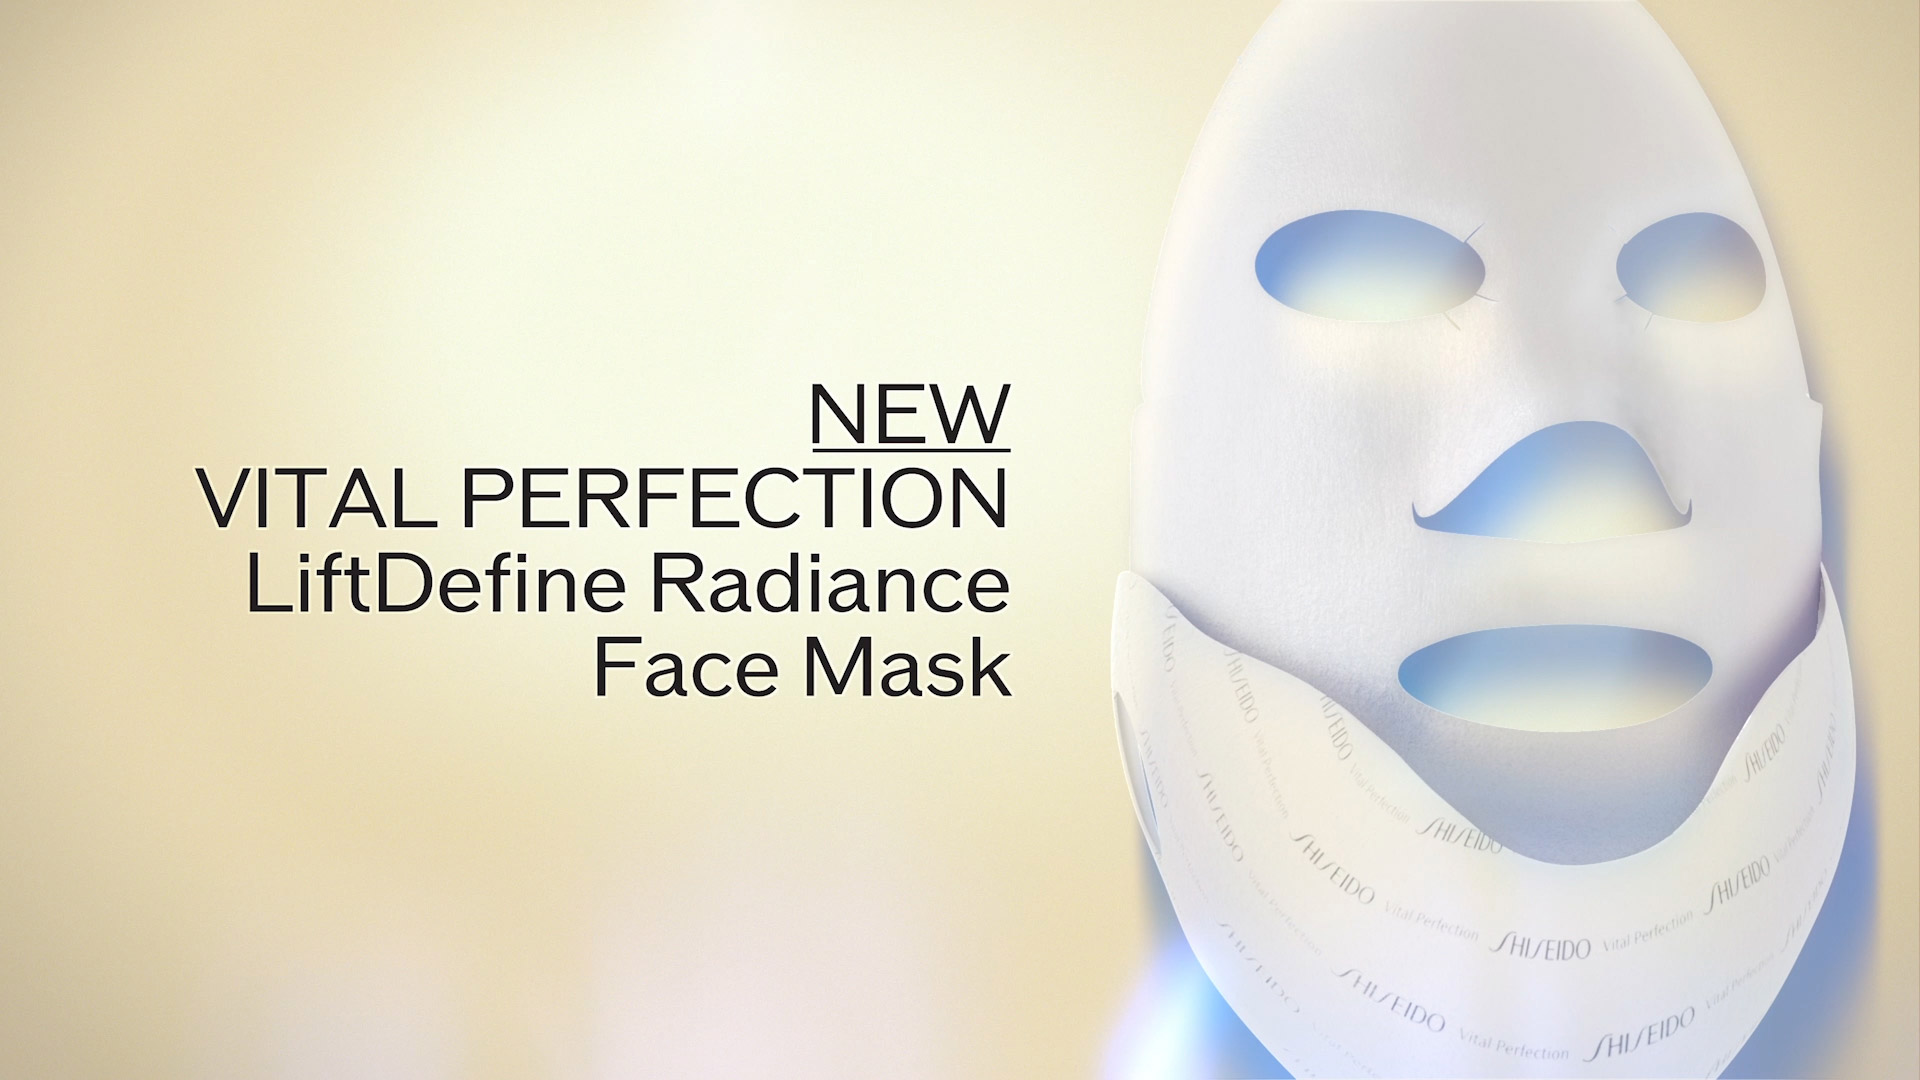 NEW Vital Perfection LifeDefine Radiance Face Mask